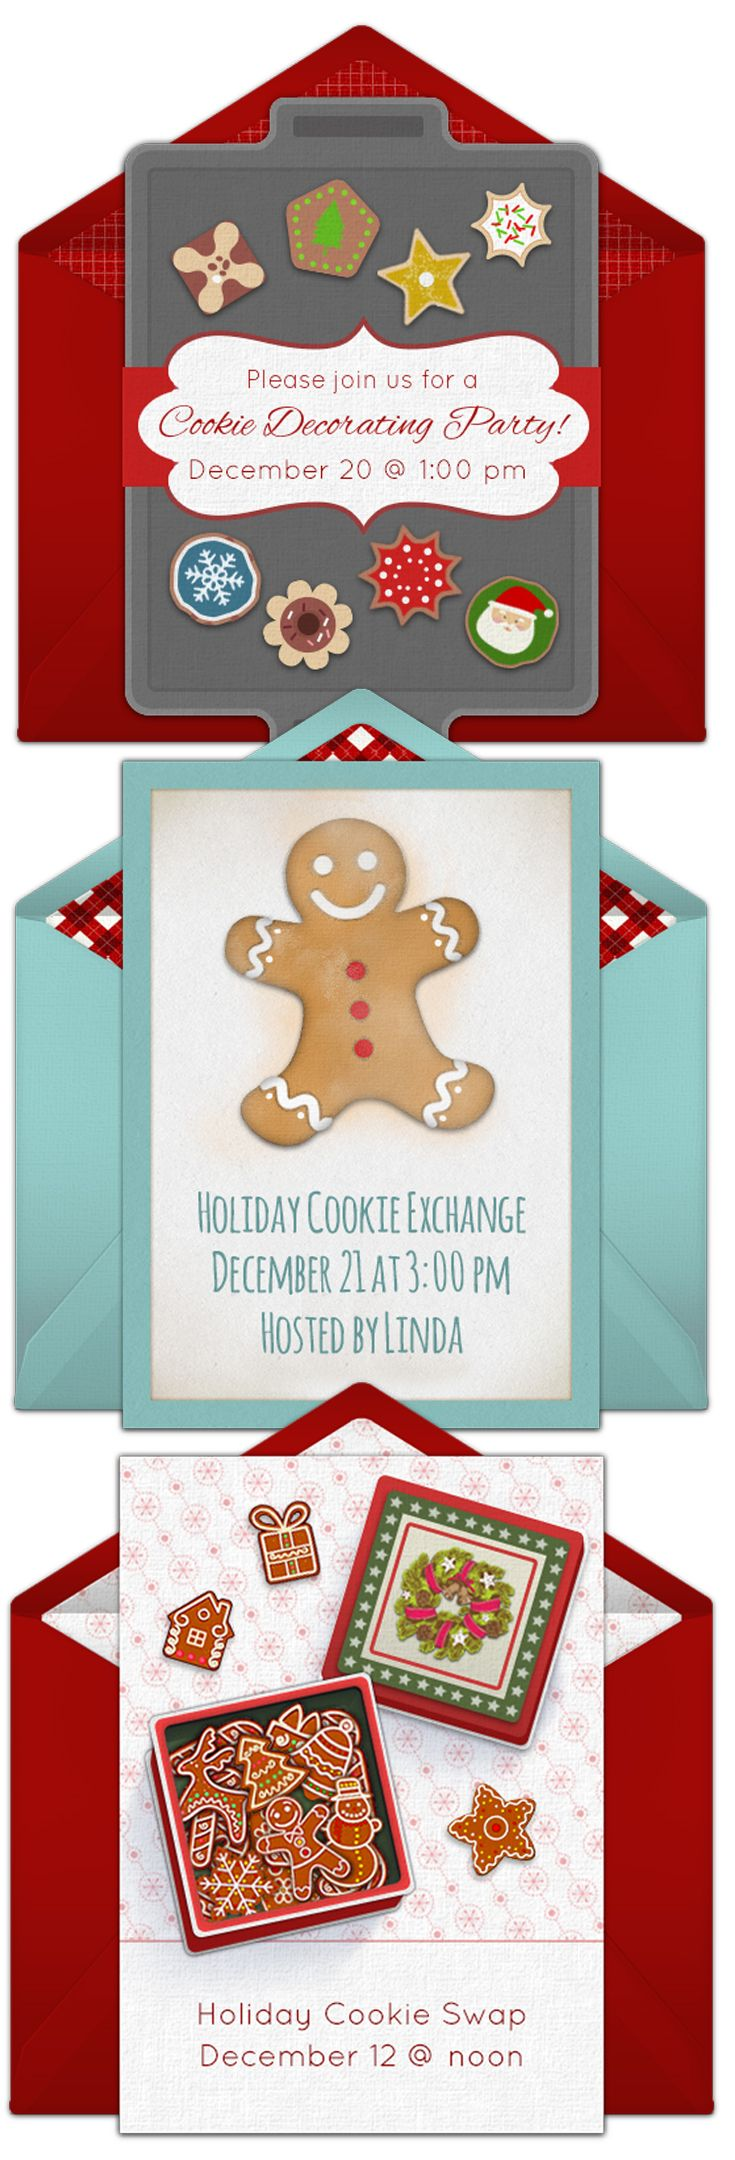 Online Invitations from   Cookie decorating party, Cookie exchange ...